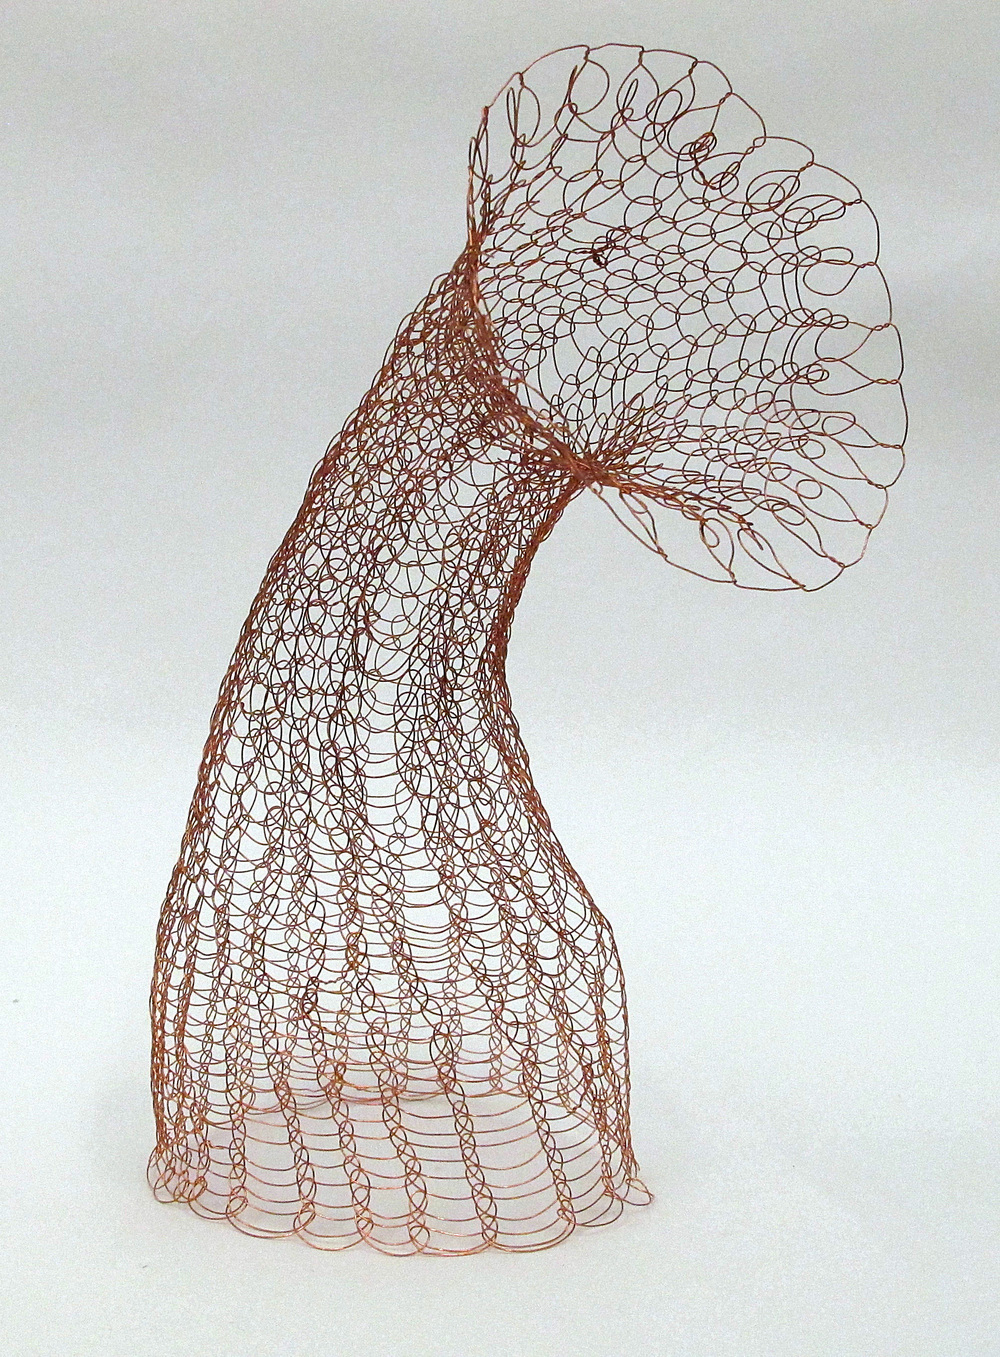 Copperwire Sculpture, 2014